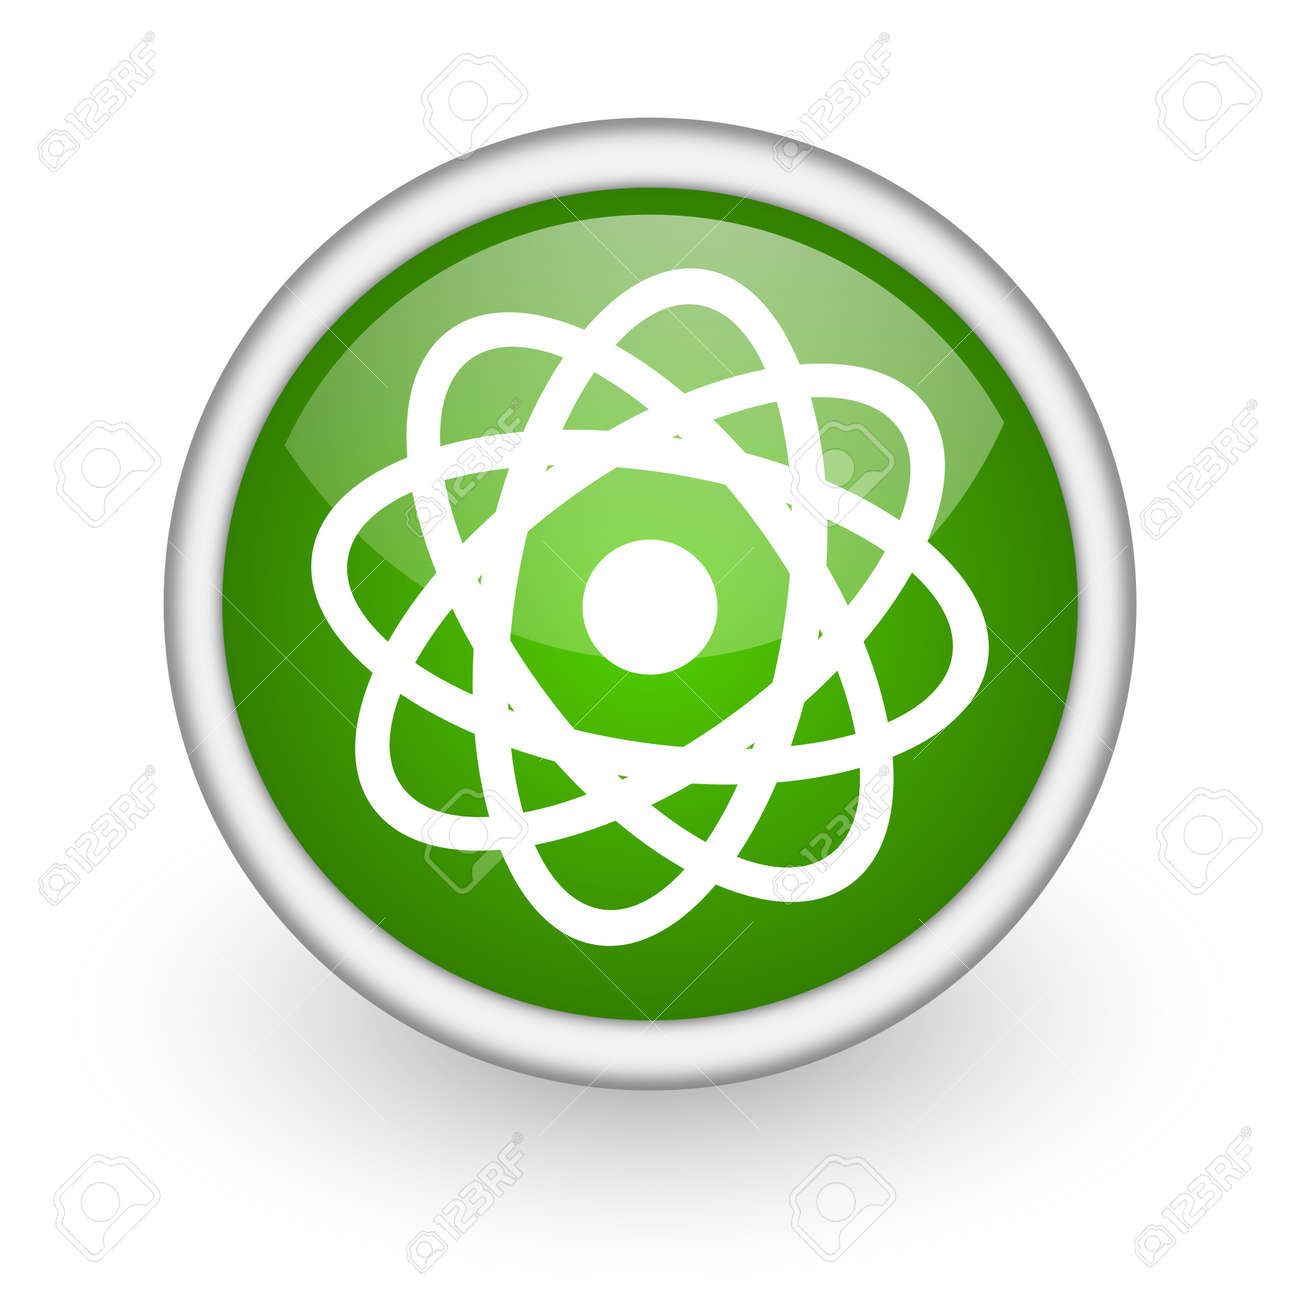 atom green circle glossy web icon on white background Stock Photo - 17648110